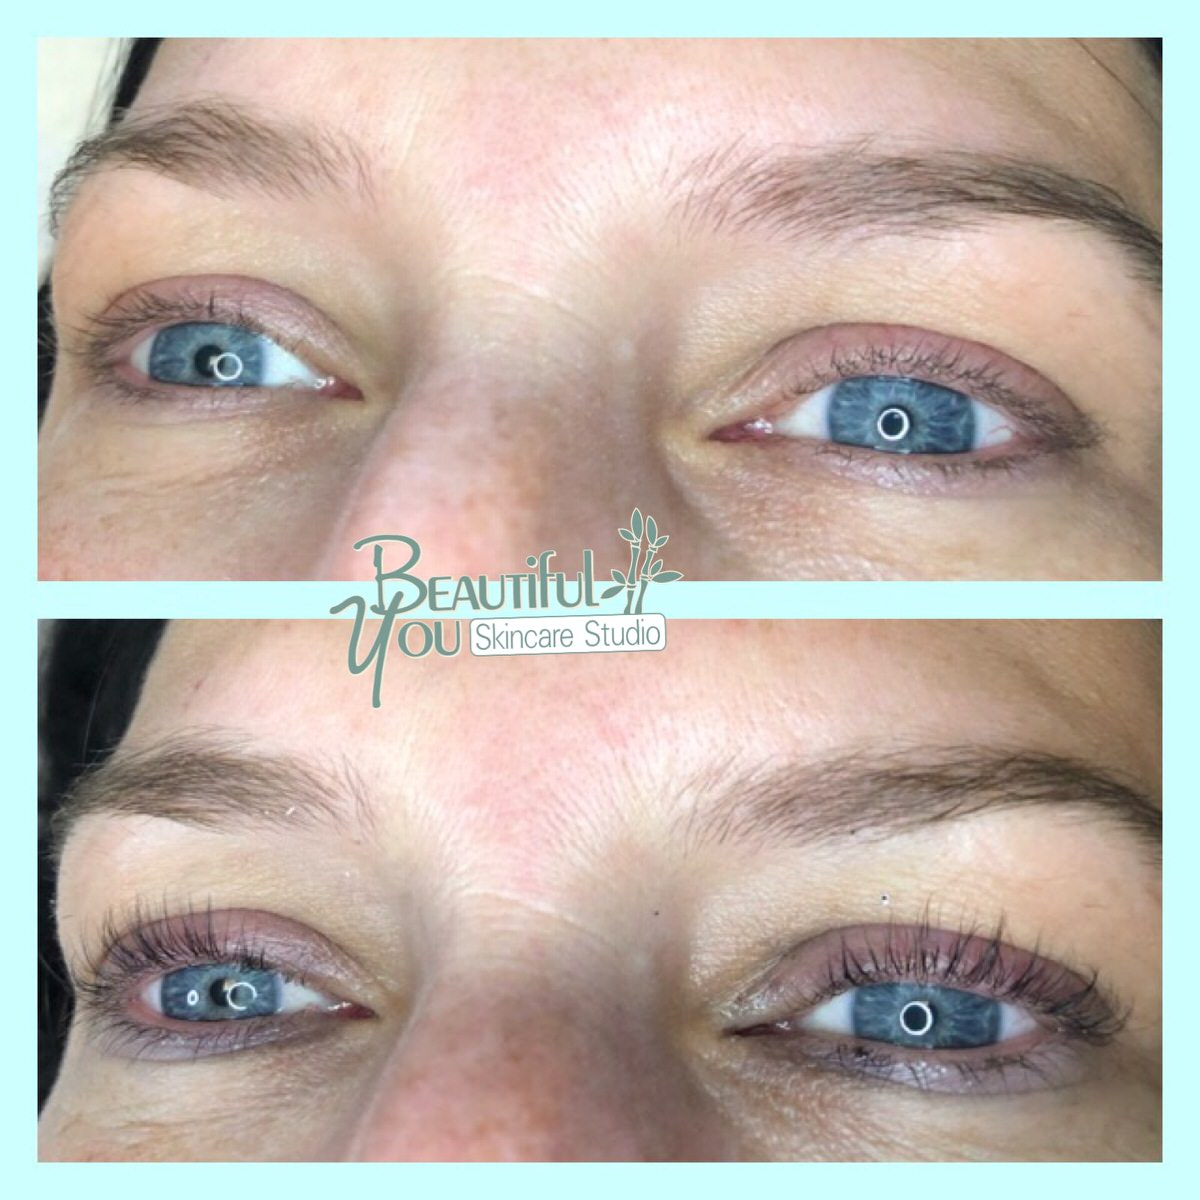 Beautiful-You-Skincare-Studio-Lash-Before-and-After20.jpg